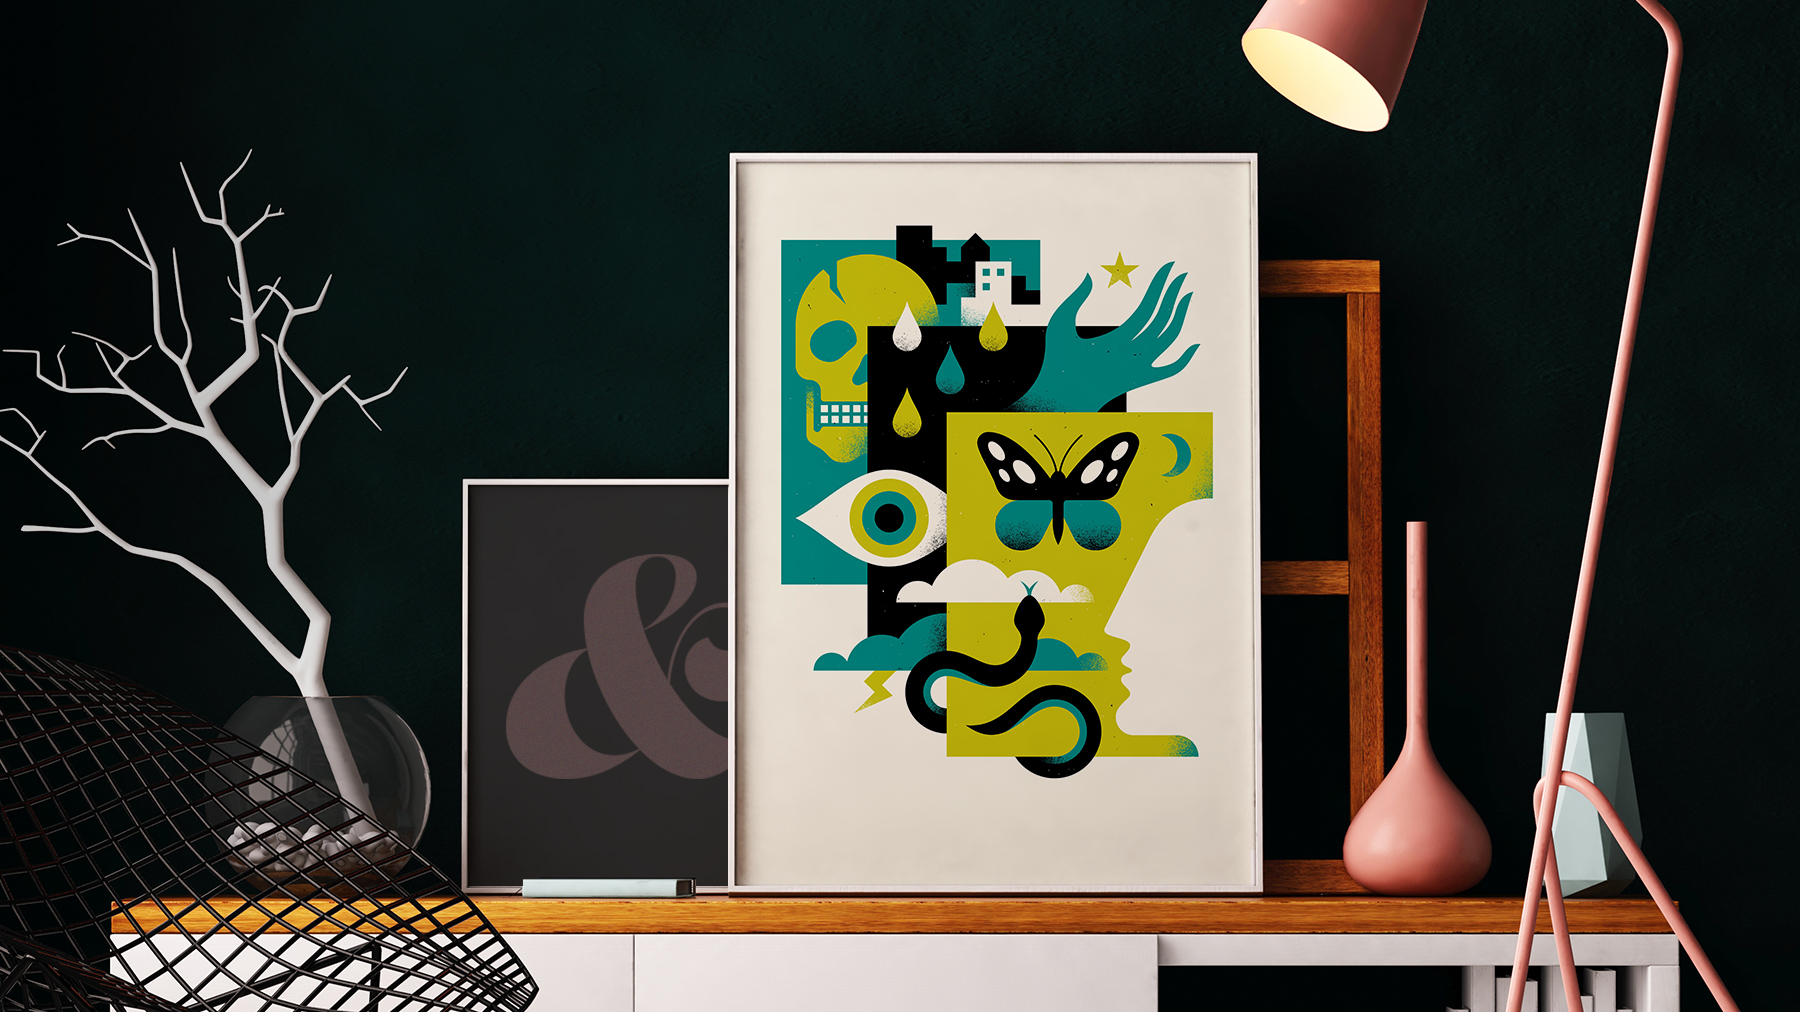 A photo of a living room setting, with framed posters on display. The poster artwork is by Doublenaut Design for The National Poster Retrospecticus and depicts a geometric illustration containing a skull, snake, butterfly, hand, eye, and the silhouette of a person's face.